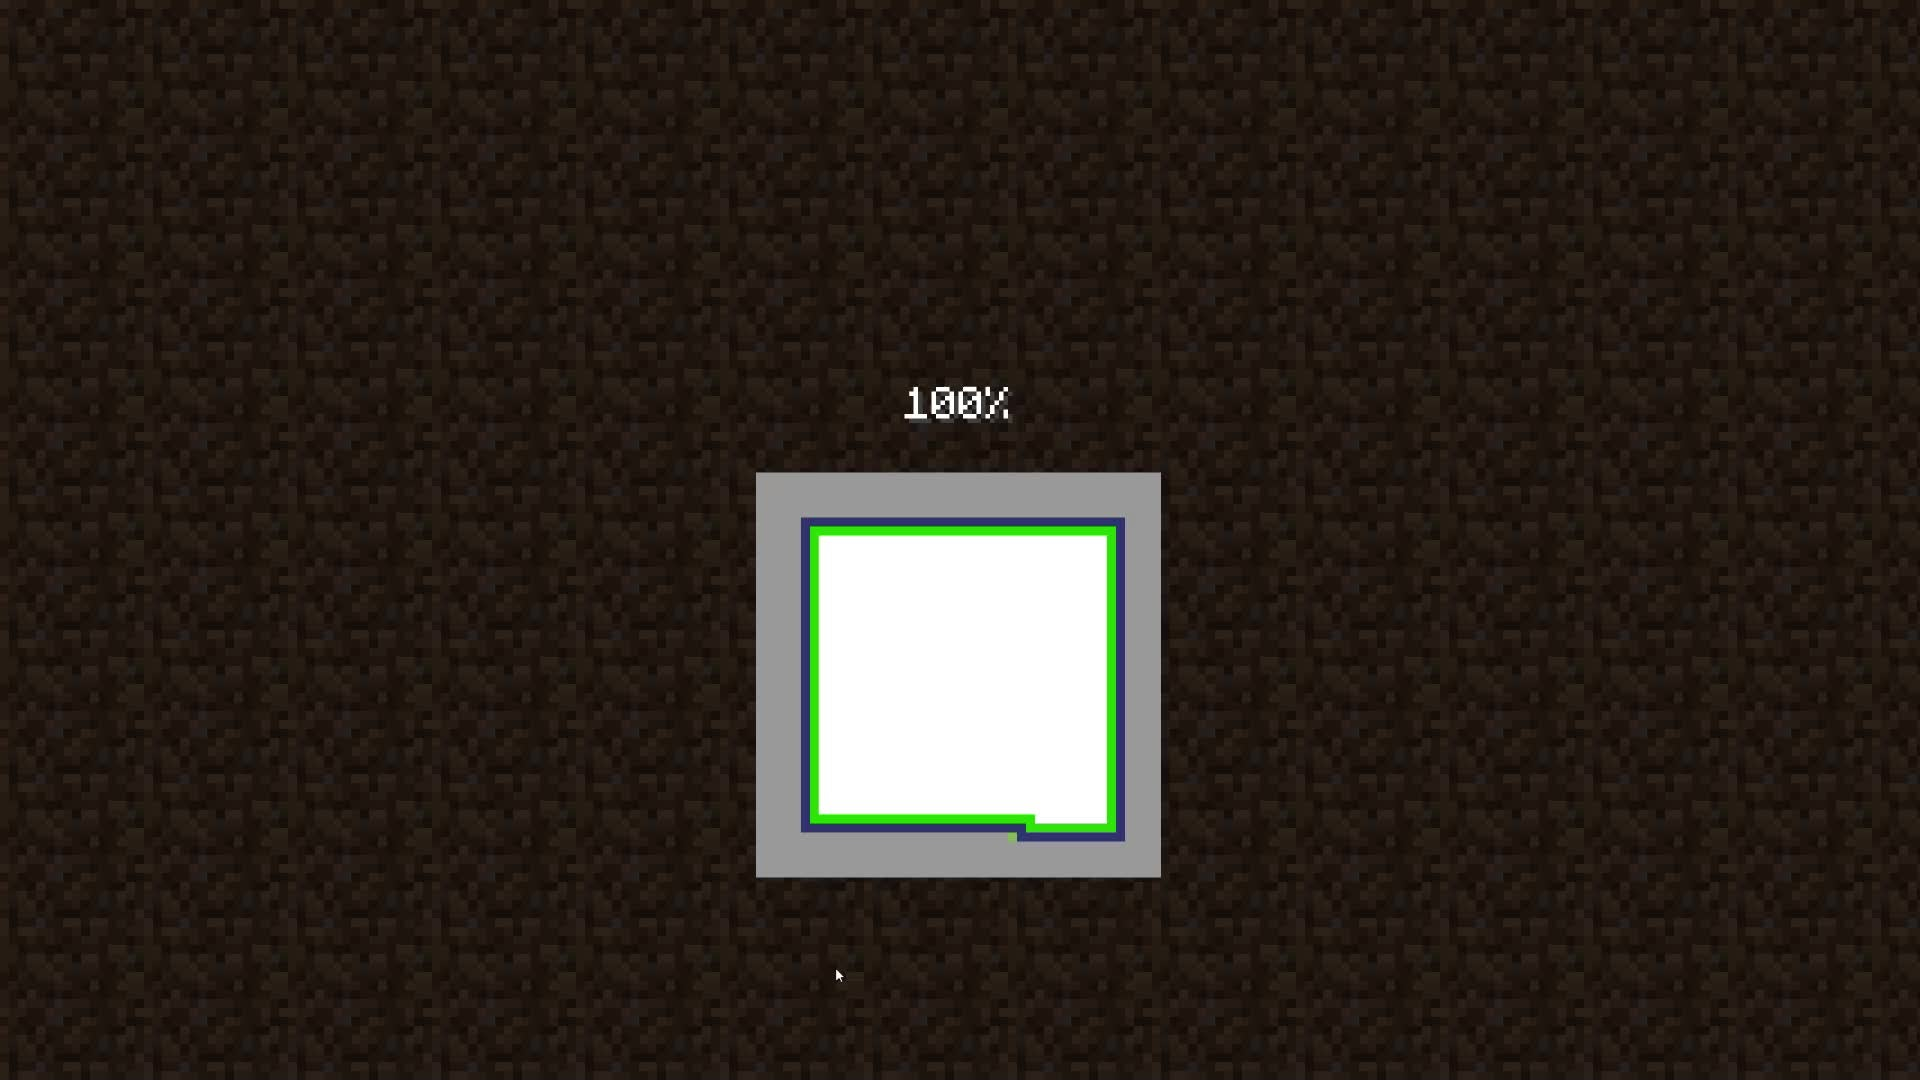 Minecraft: General - Nice spawn. video cover image 0